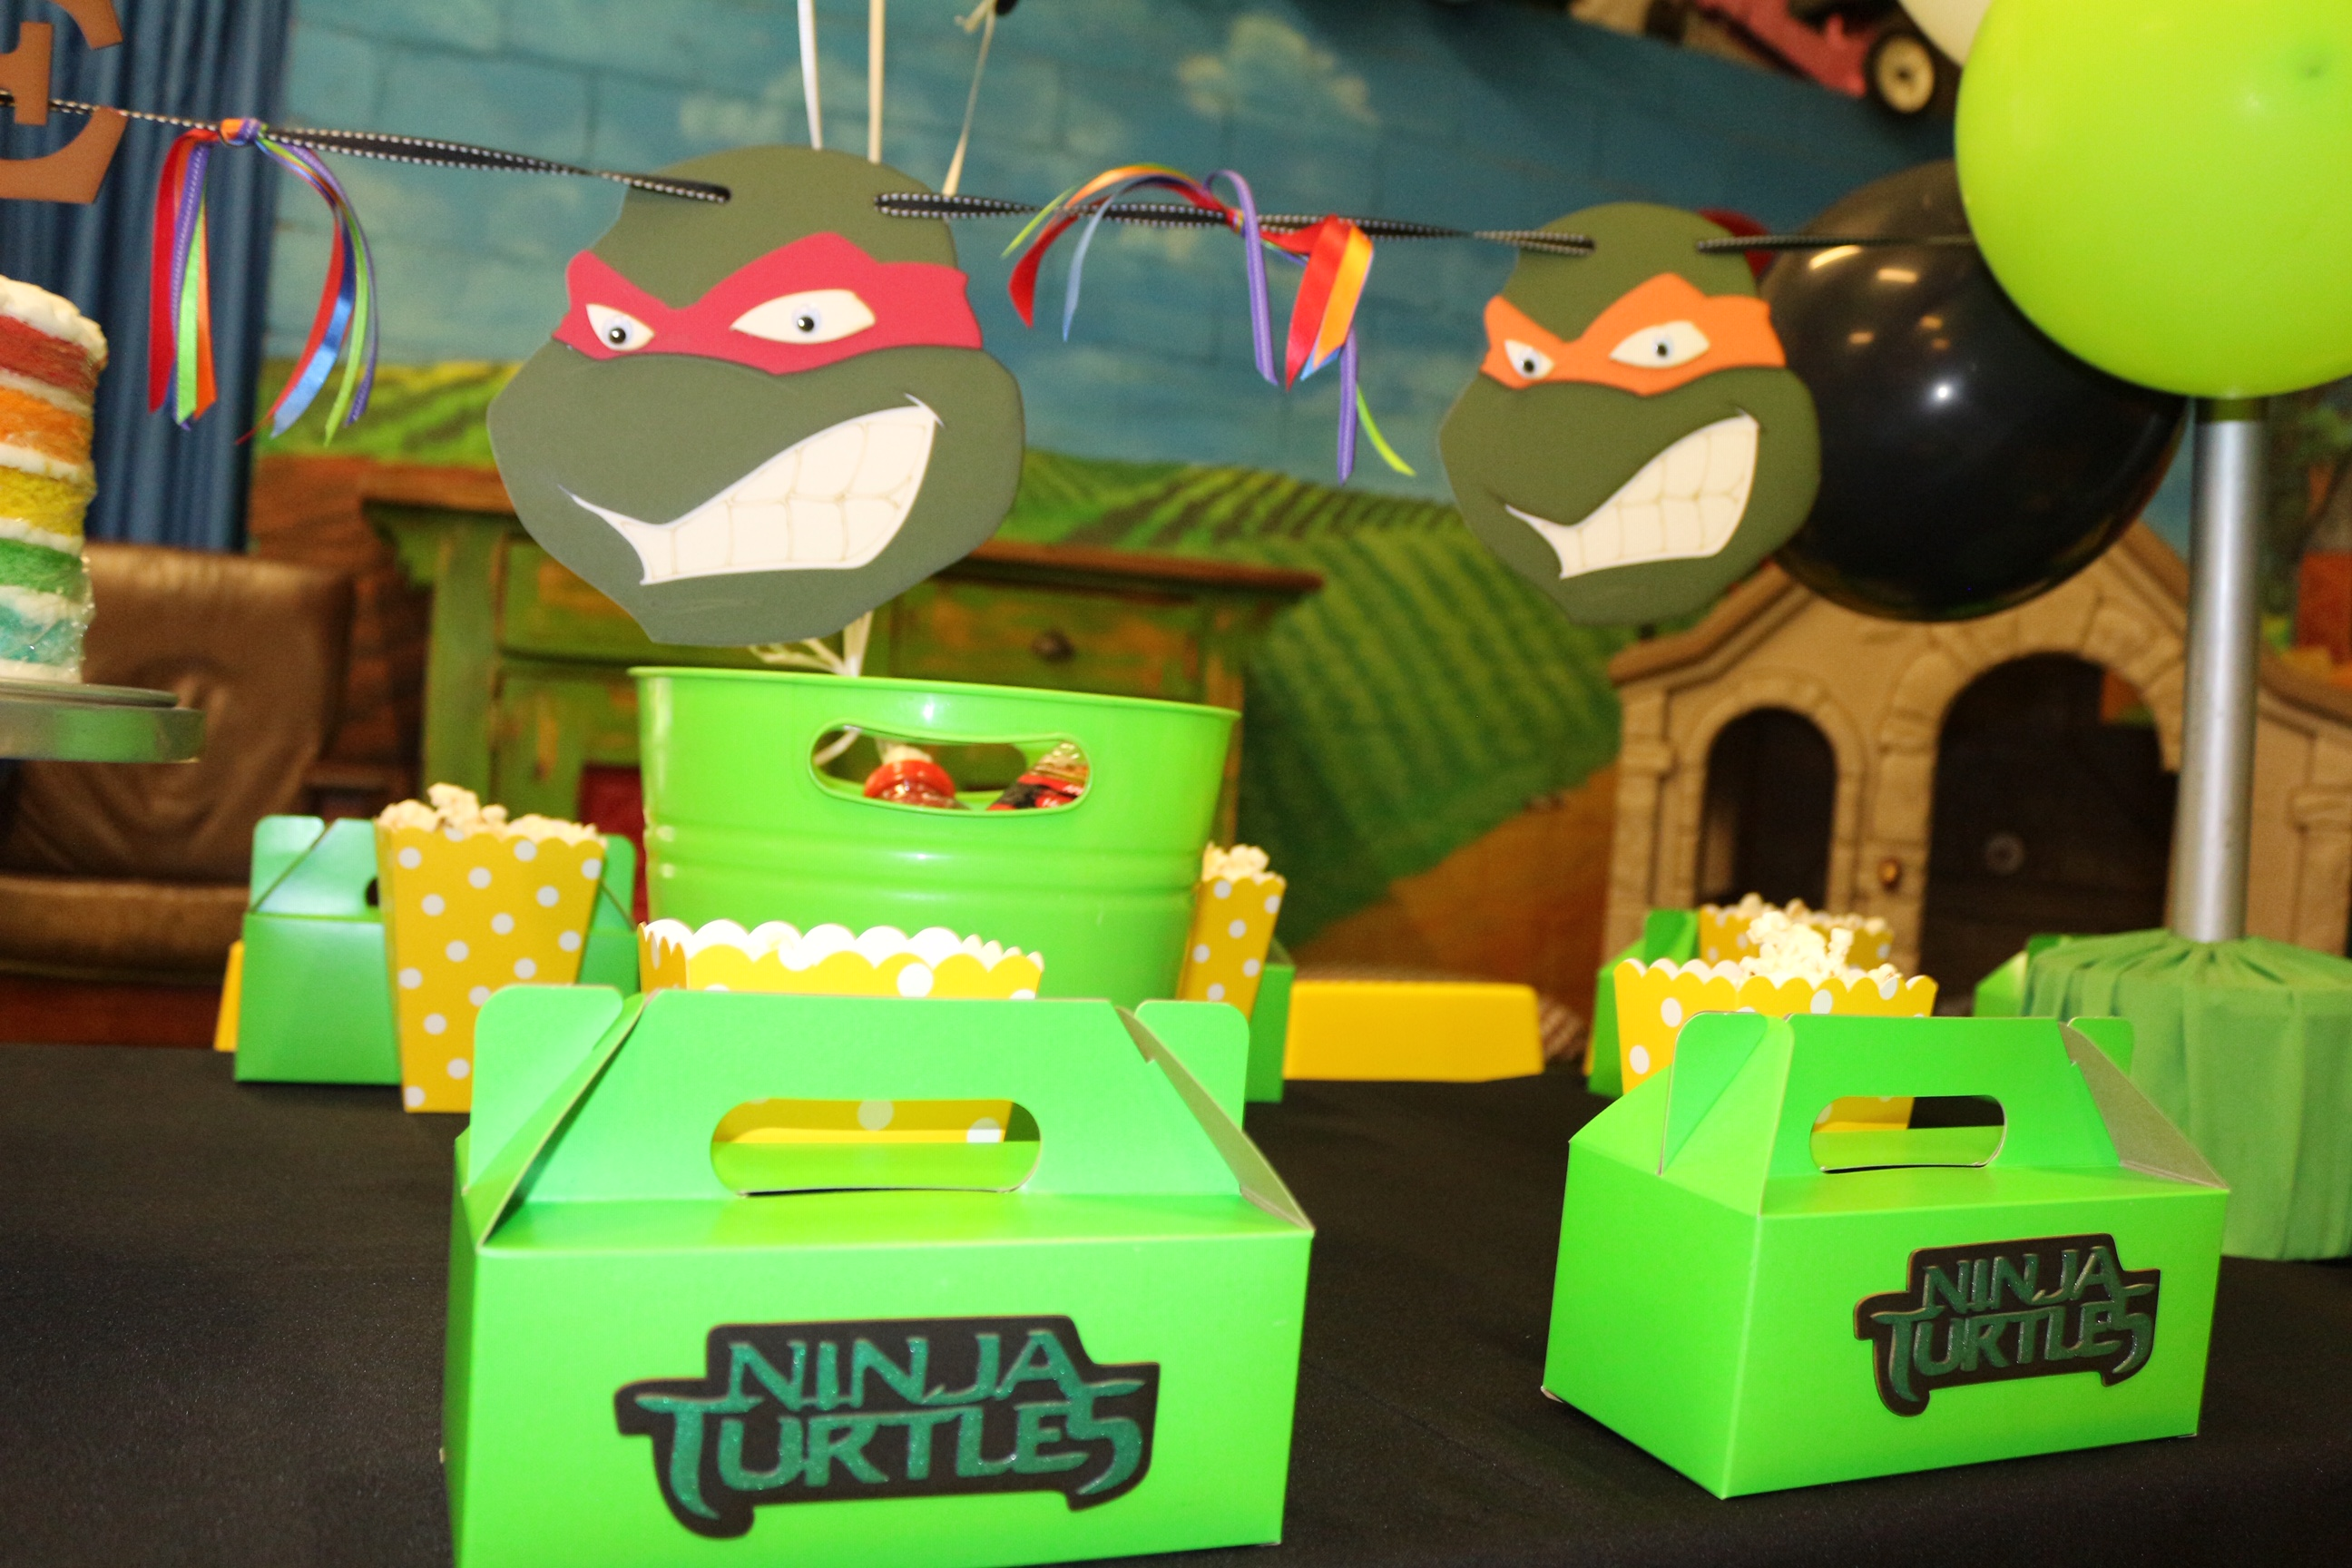 ninja turtles bugz playpark